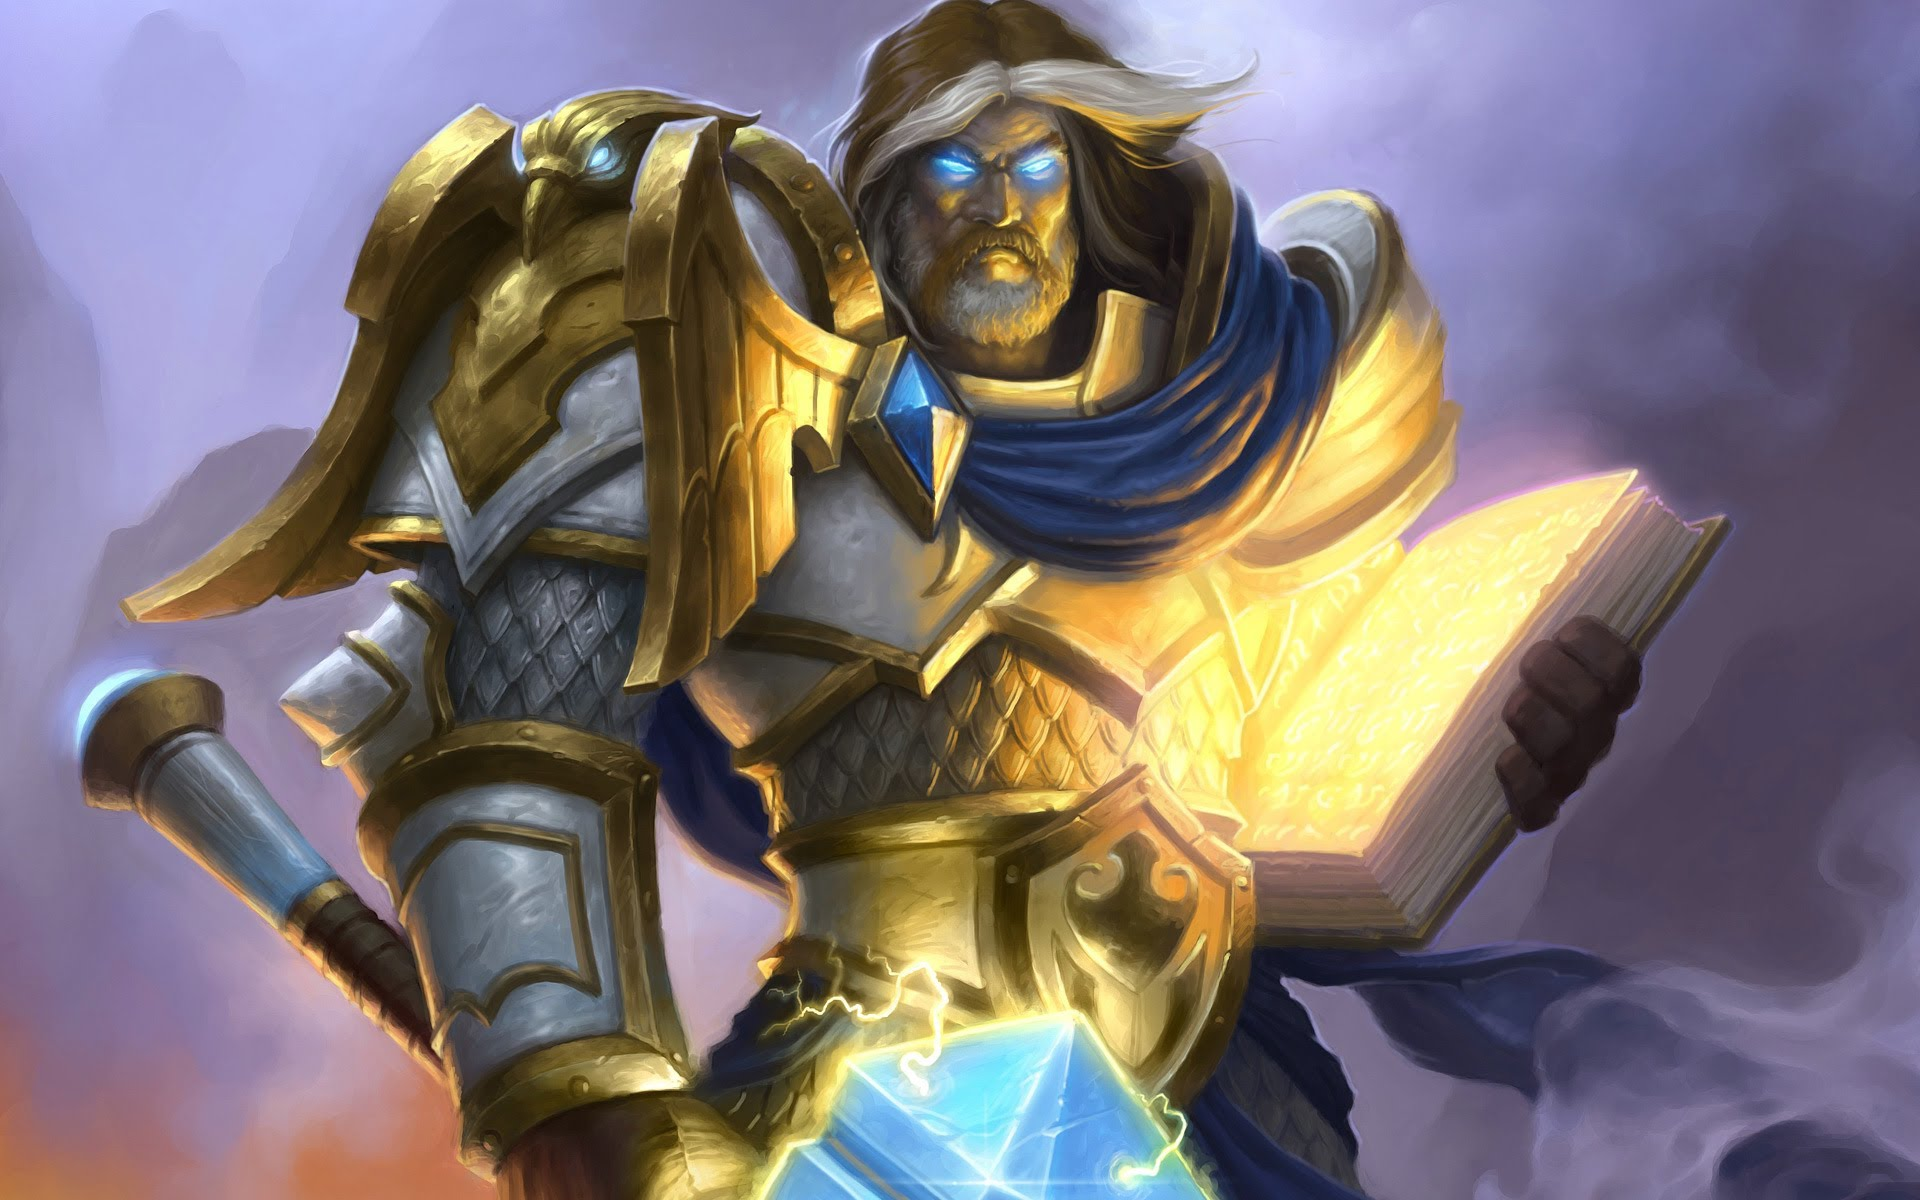 Uther's Pilgrimage - 10th Anniversary